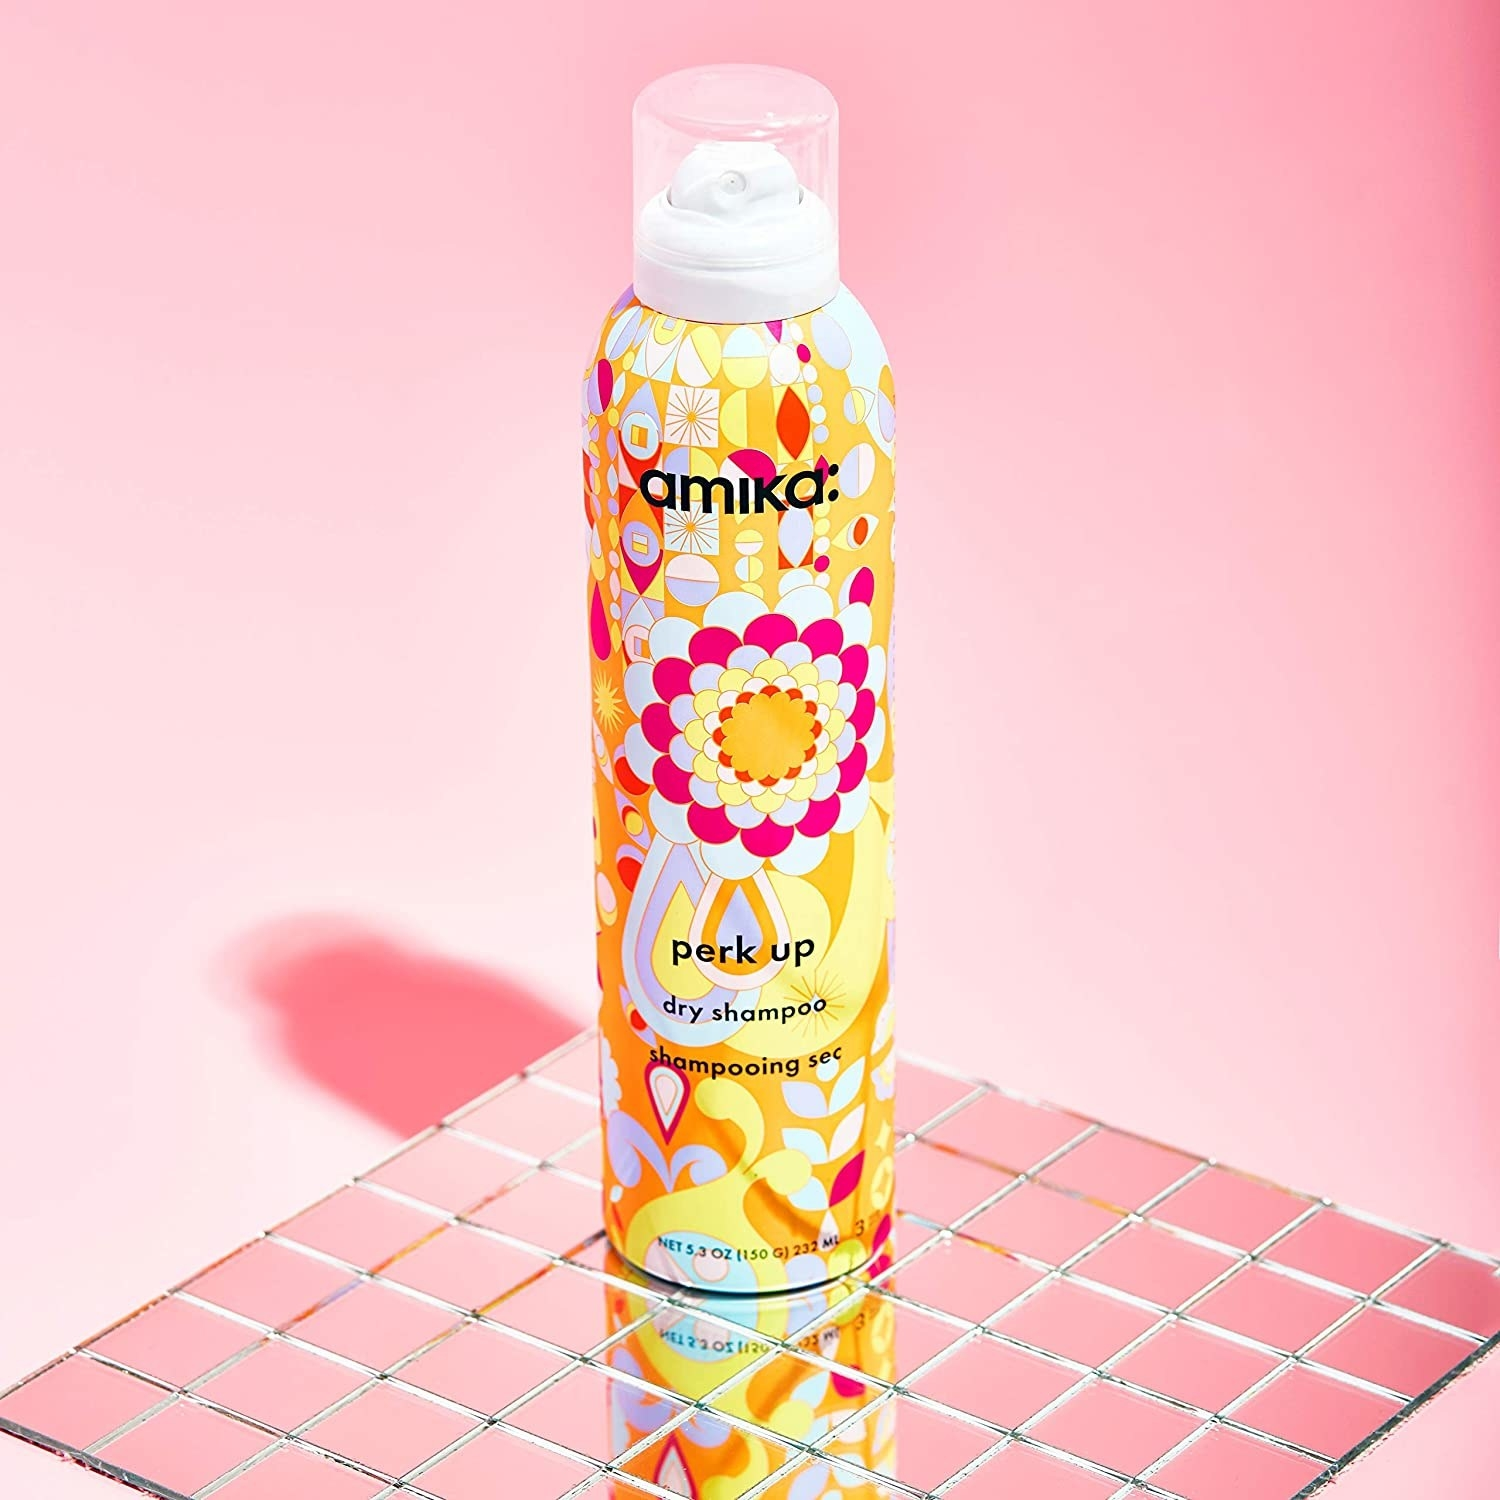 the yellow bottle of dry shampoo